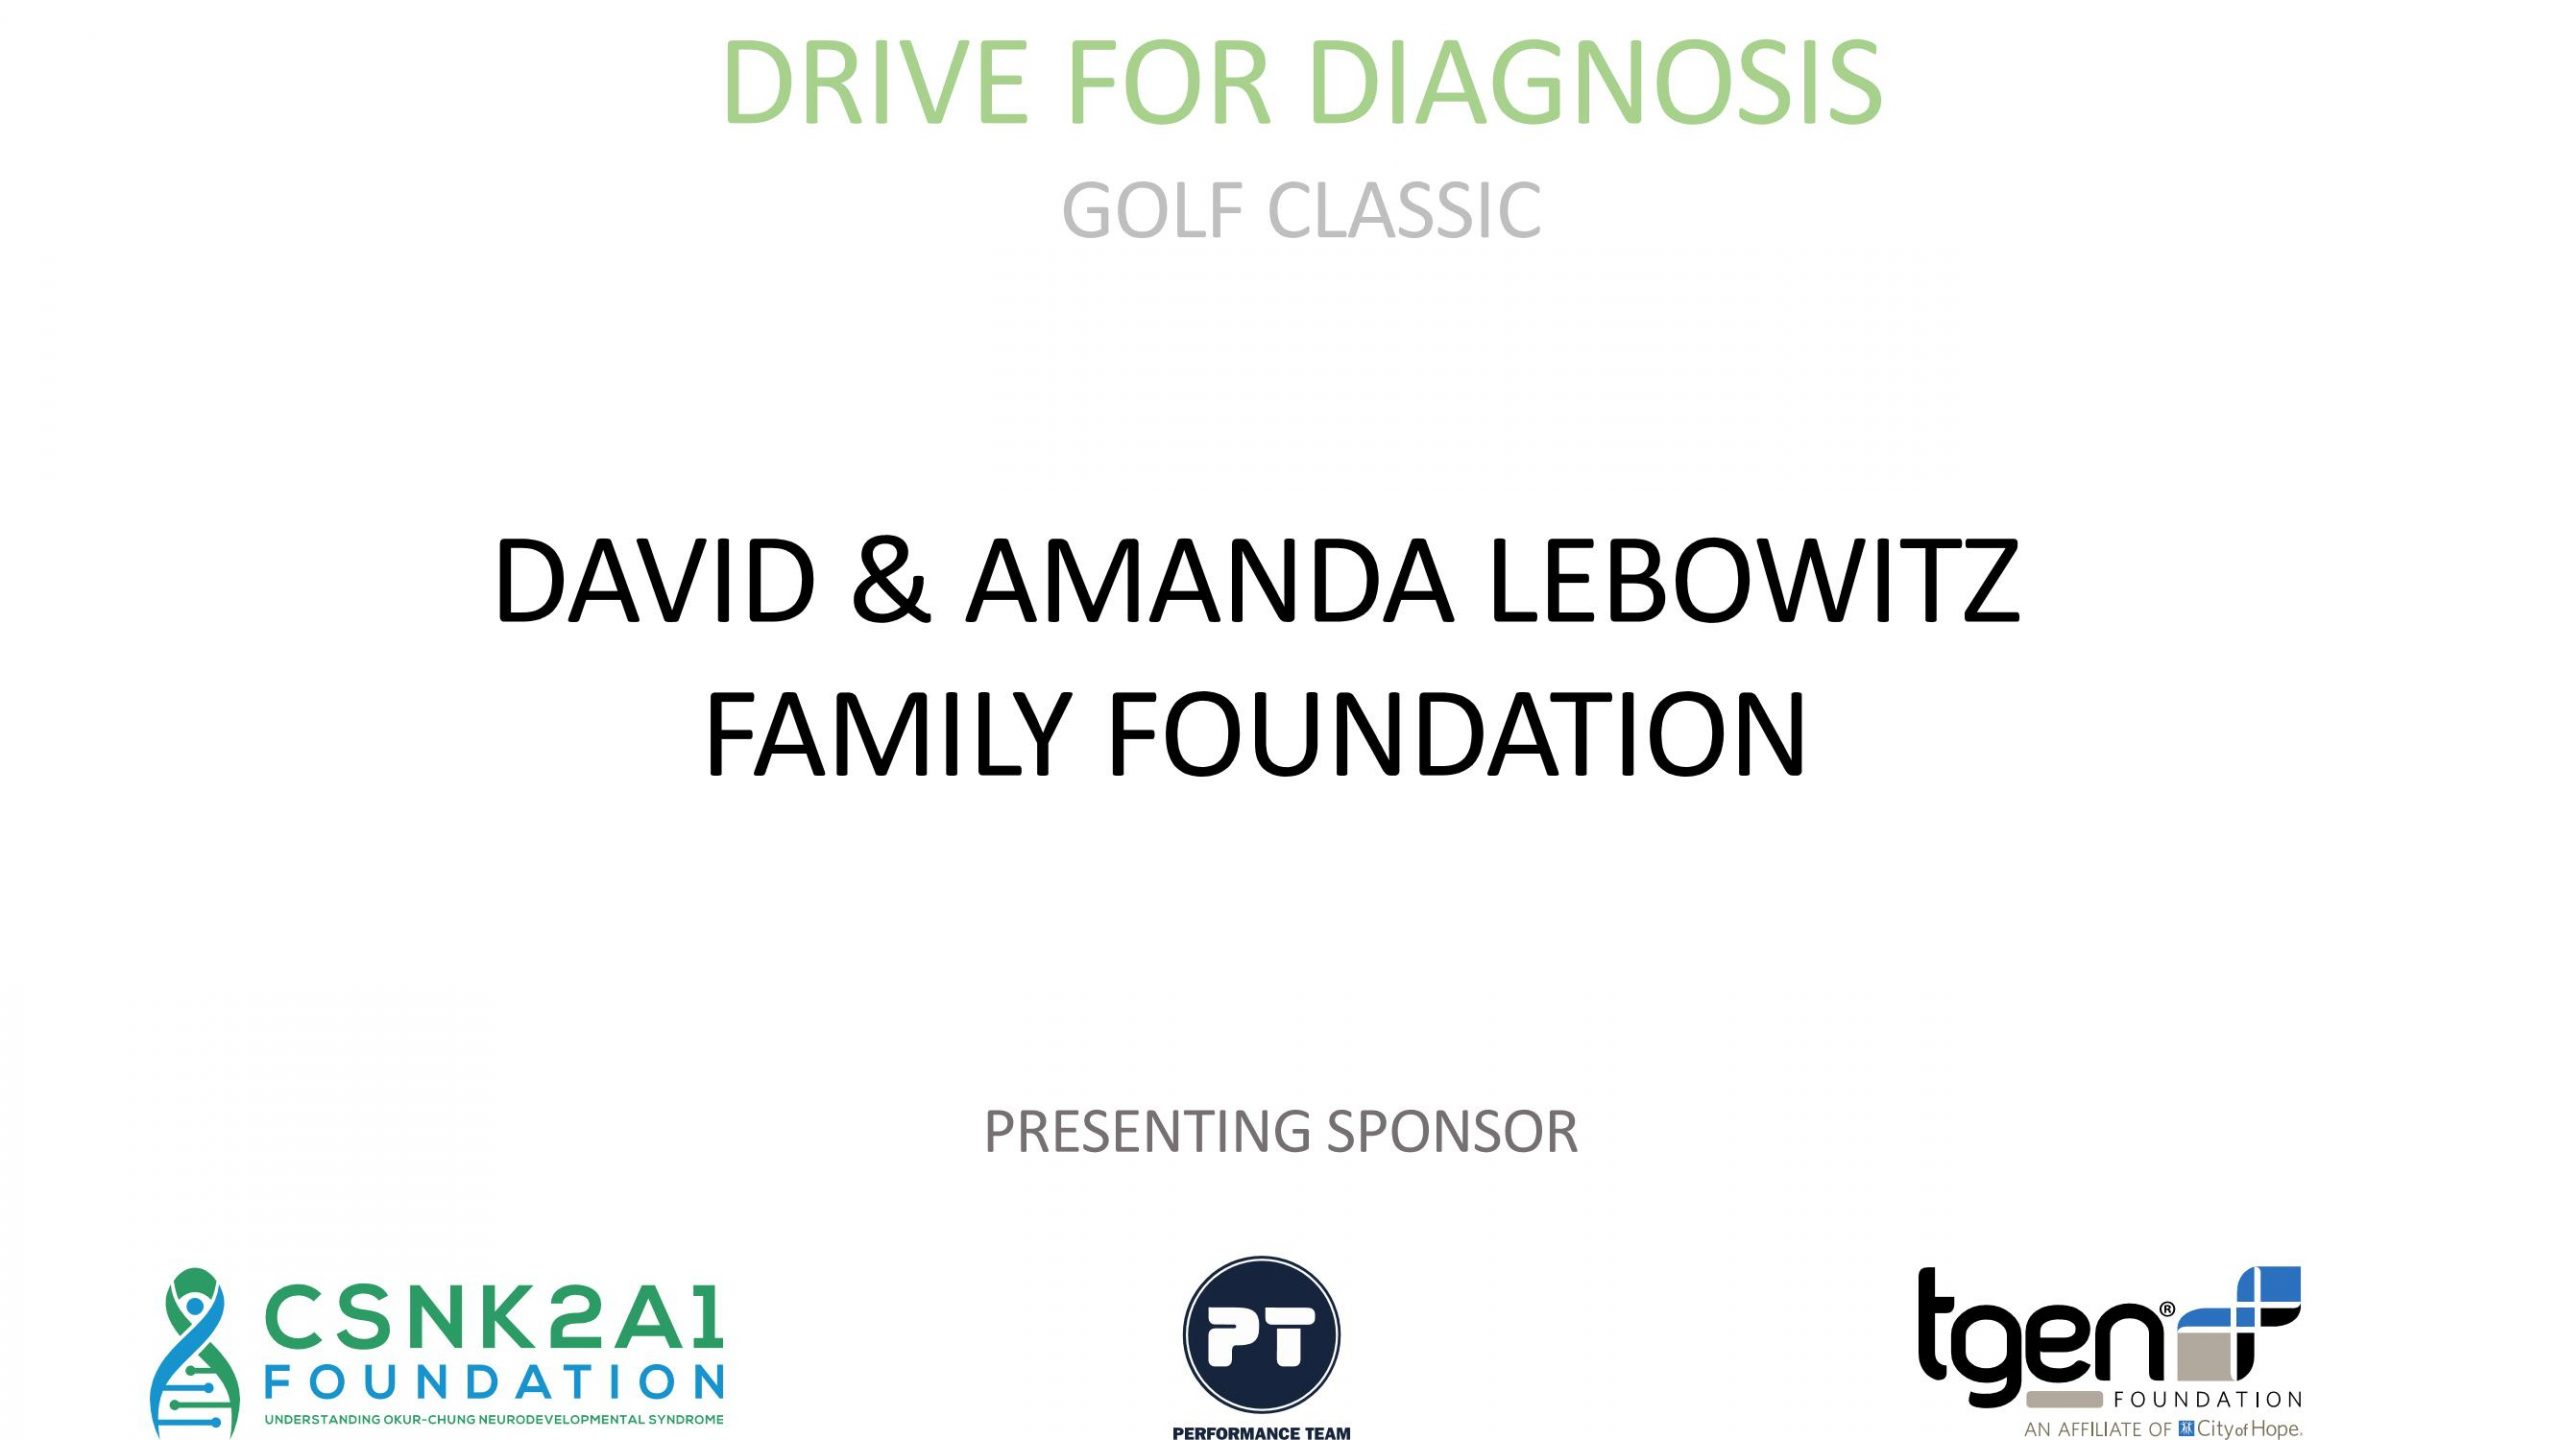 Presenting Sponsor - David & Amanda Lebowitz Family Foundation